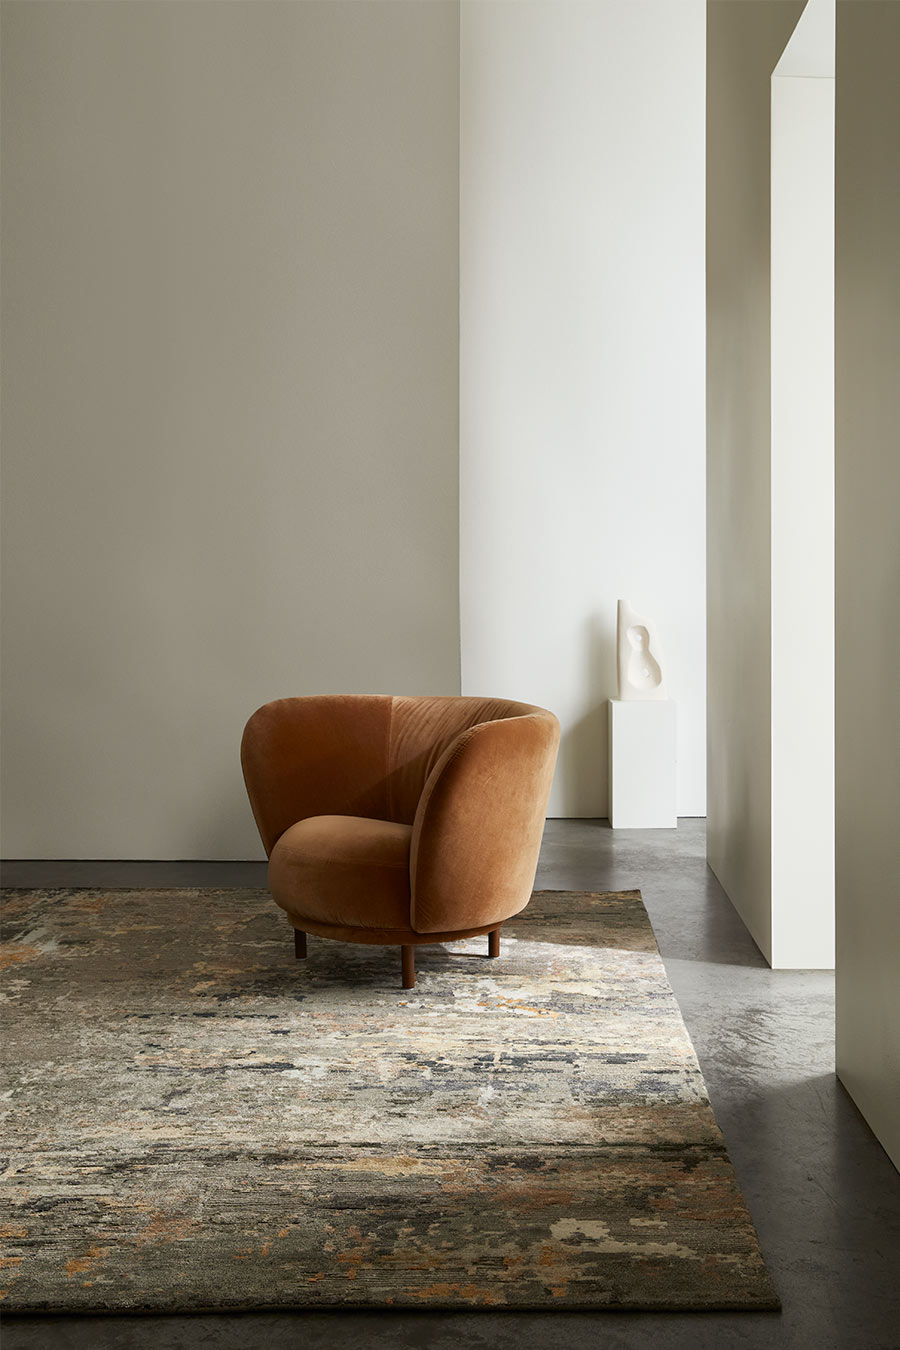 Styled image of Turmeric rug in grey